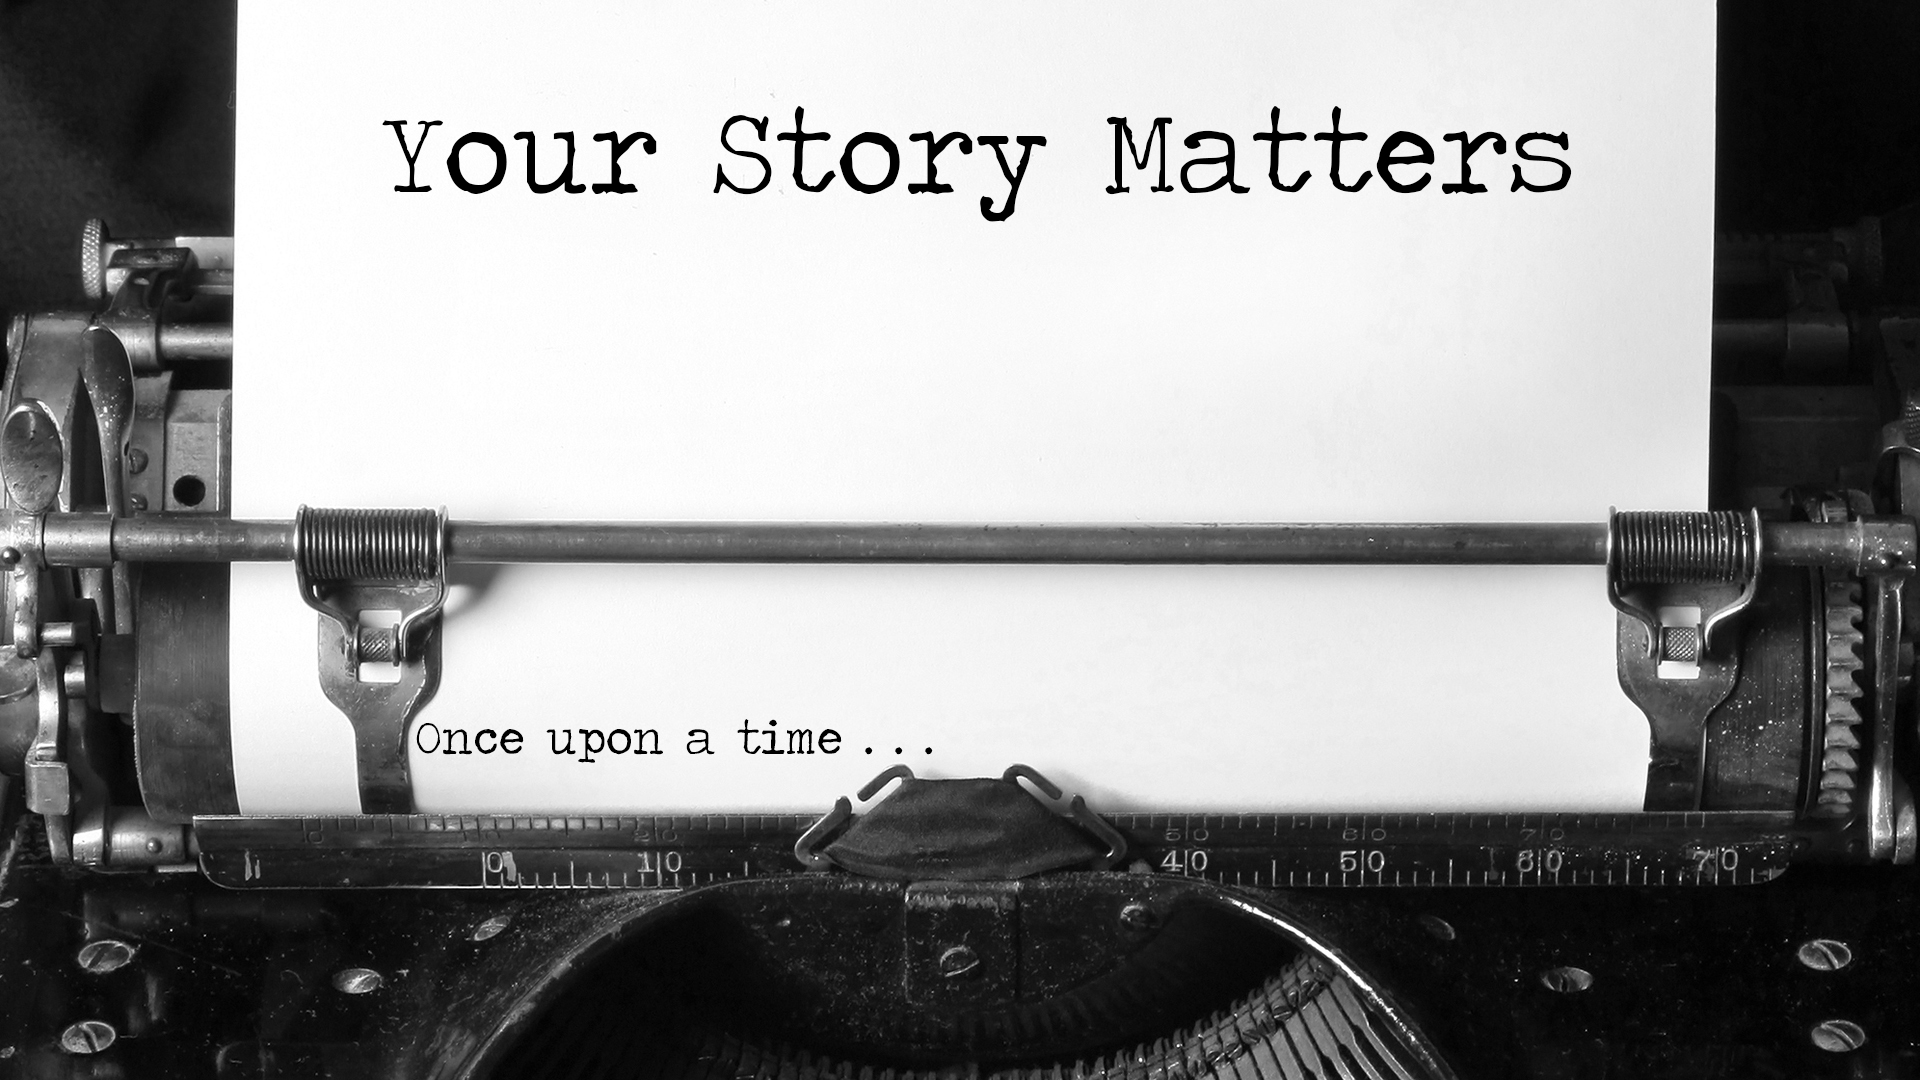 Your Story Matters (2014)